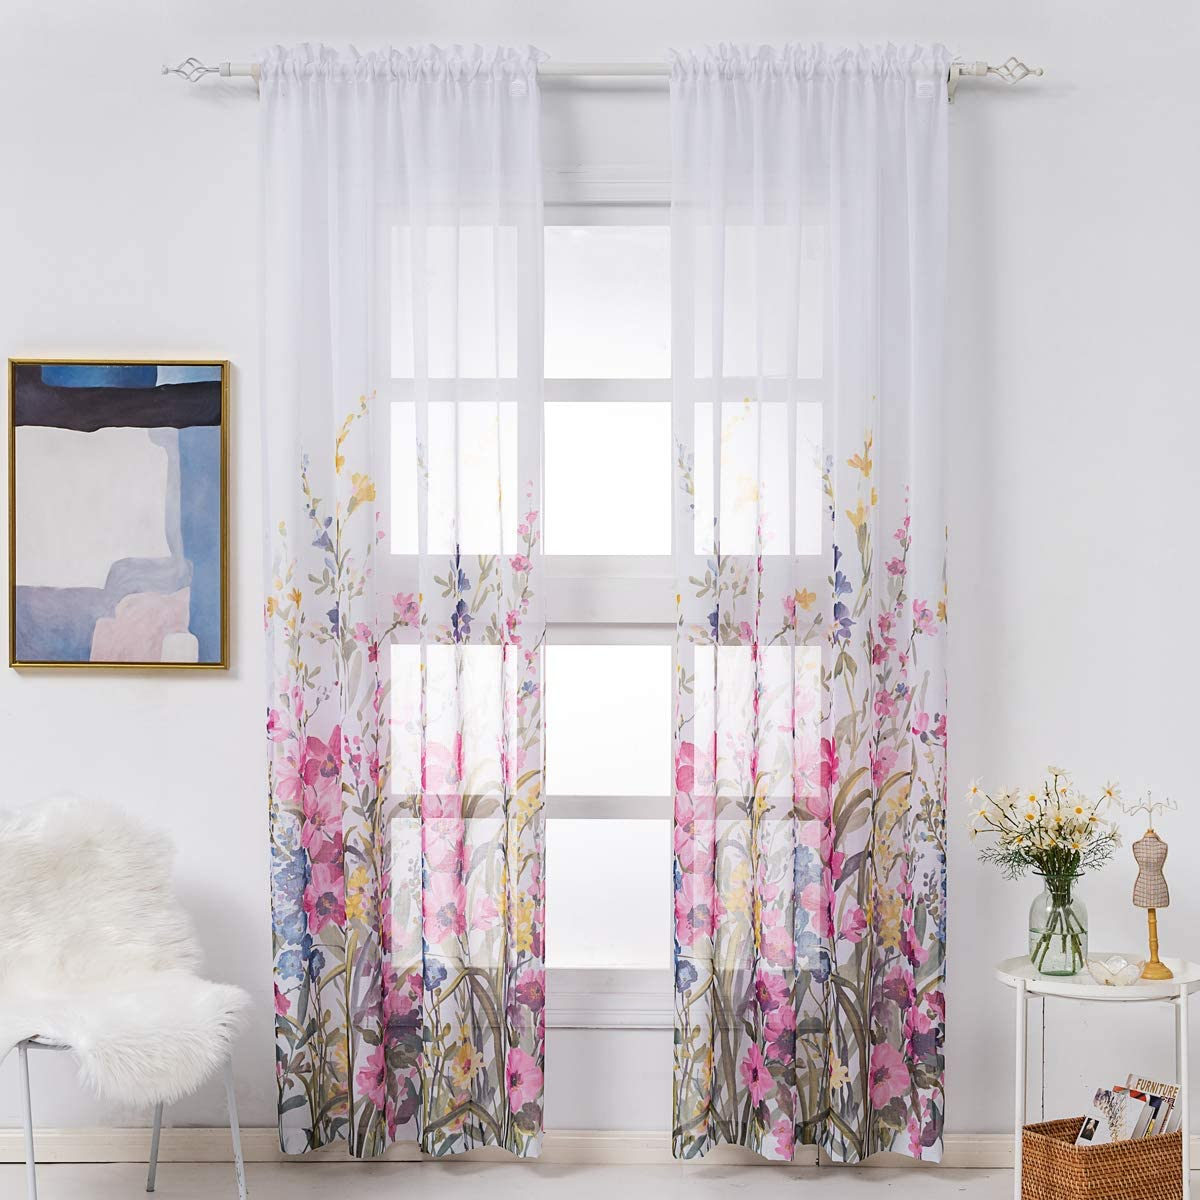 Kotile Pink Floral Sheer Curtains for Living Room 96 Inch Long Bedroom Window Curtain Print Flowers Blossom Curtain 2 Panels, Red and Pink, 52 x 96 Inch, Pair